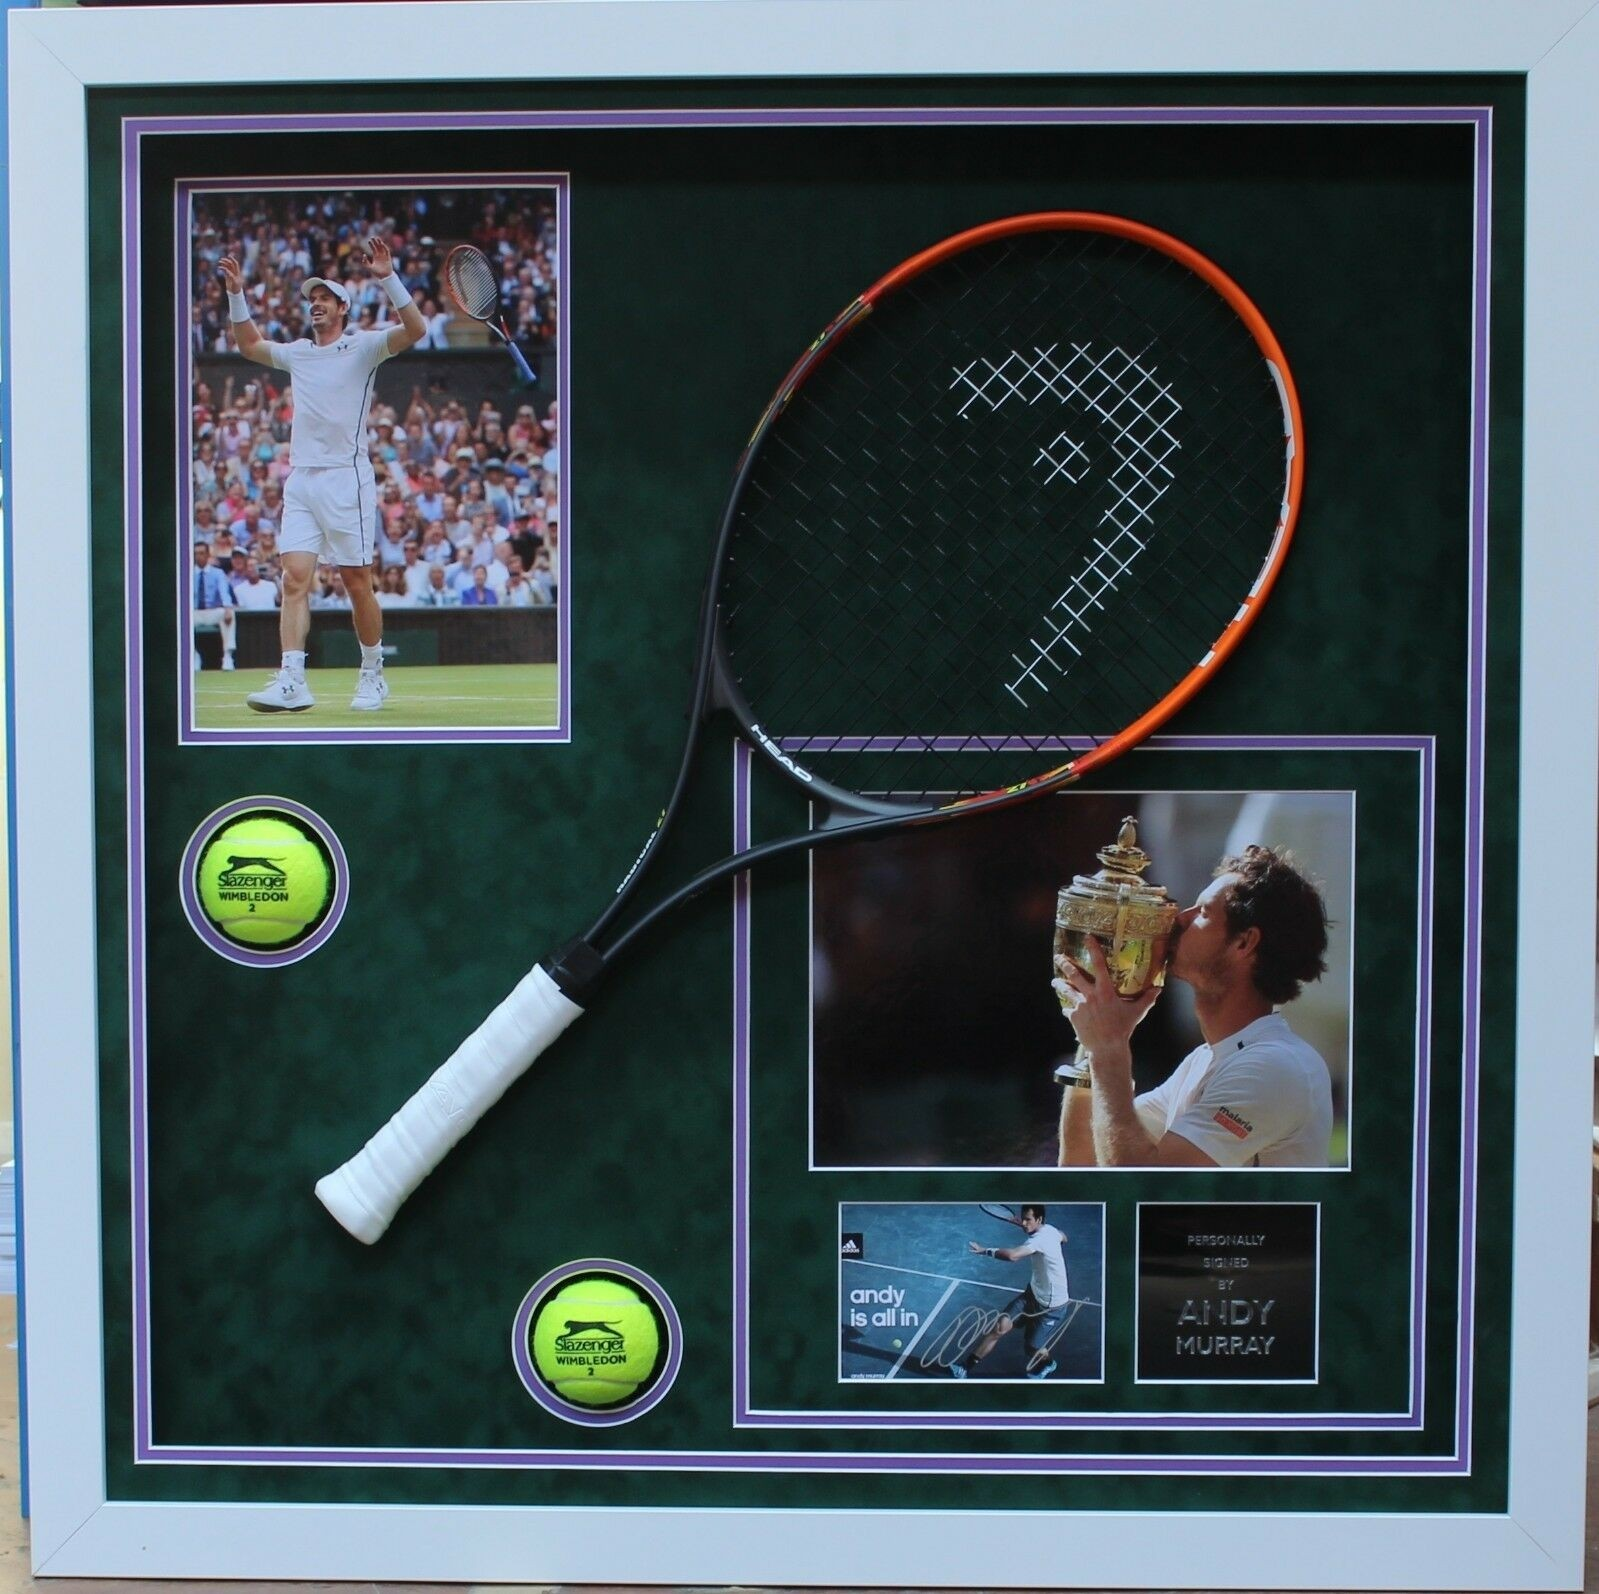 Andy Murray Signed Tennis Racket